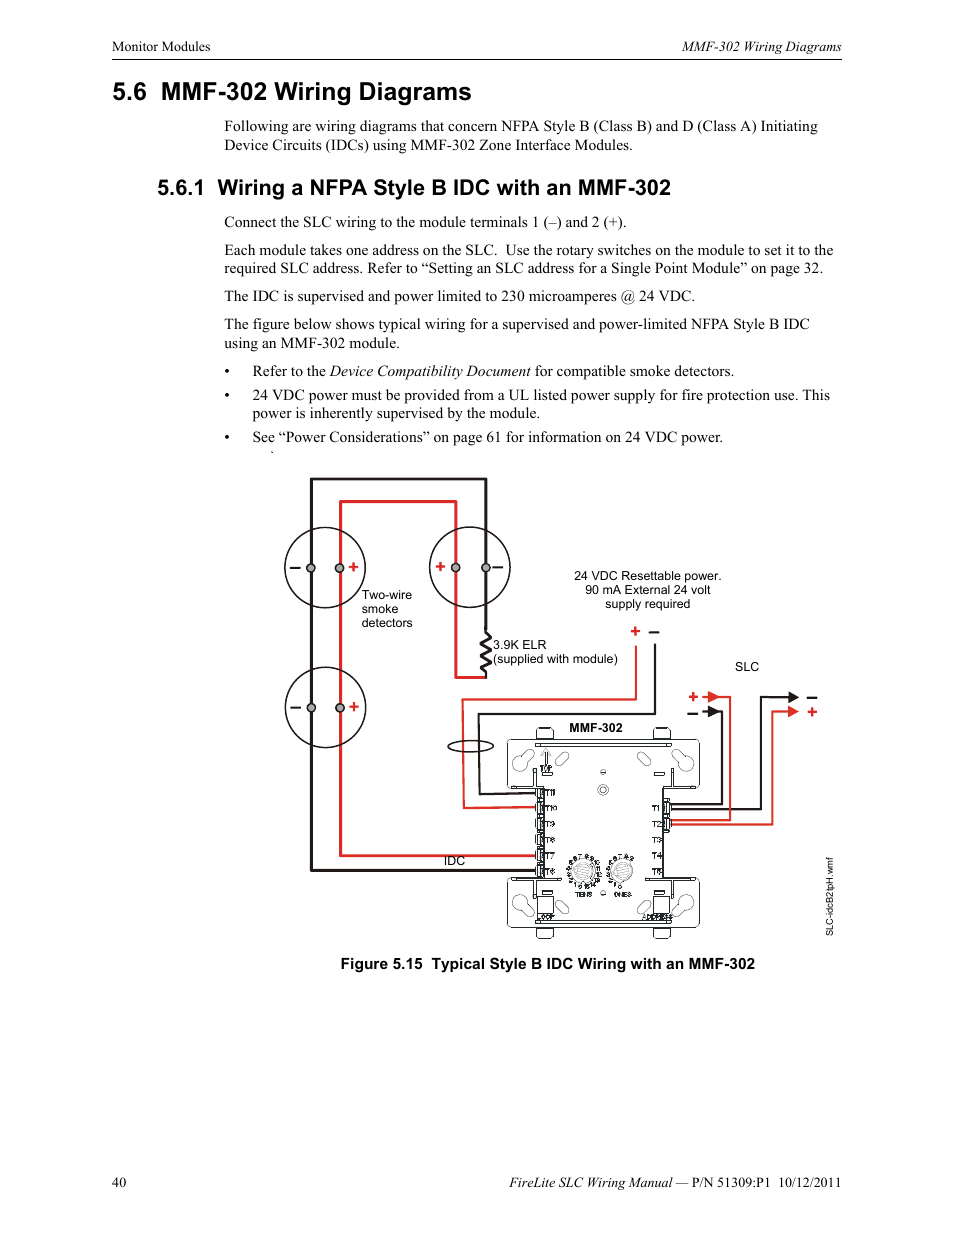 medium resolution of 6 mmf 302 wiring diagrams 1 wiring a nfpa style b idc with an mmf6